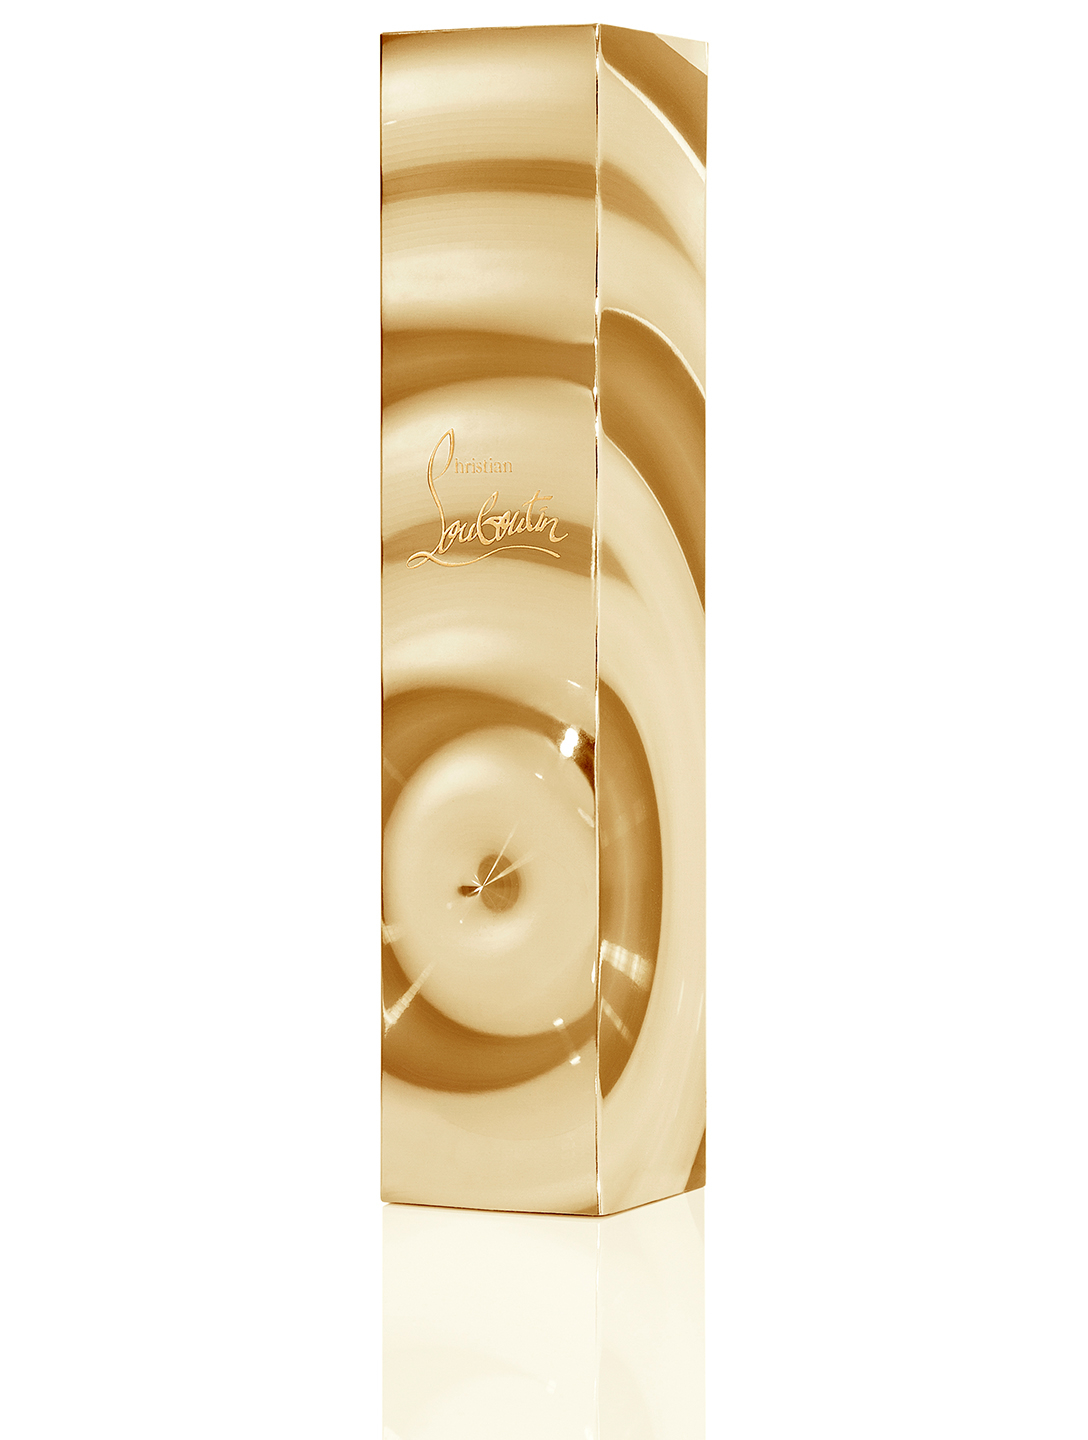 CHRISTIAN LOUBOUTIN Tape à l'Oeil - Metallic Eye Colour - Goldomania Limited Edition Beauty Gold